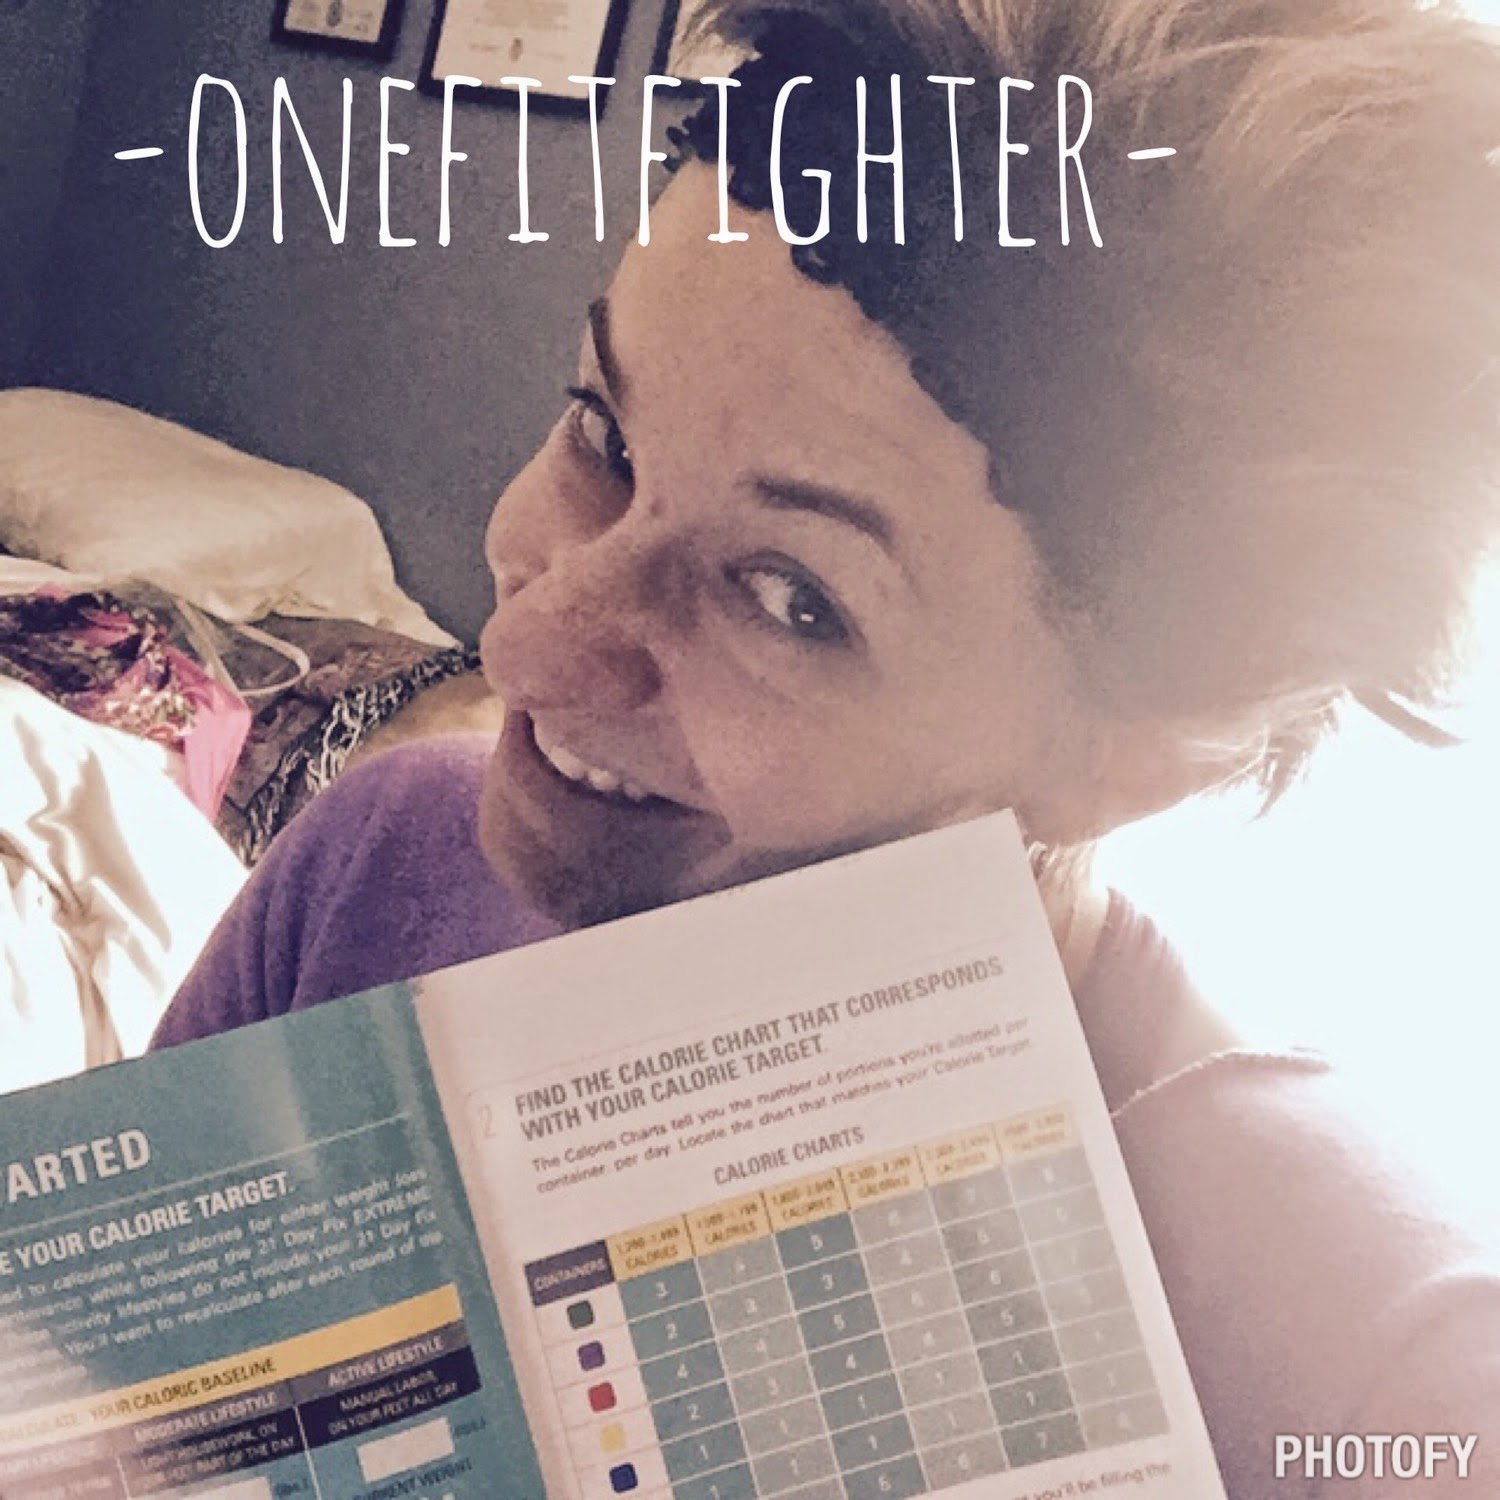 21 day fix how to start, 21 day fix extreme guide, 21 day fix testimonial